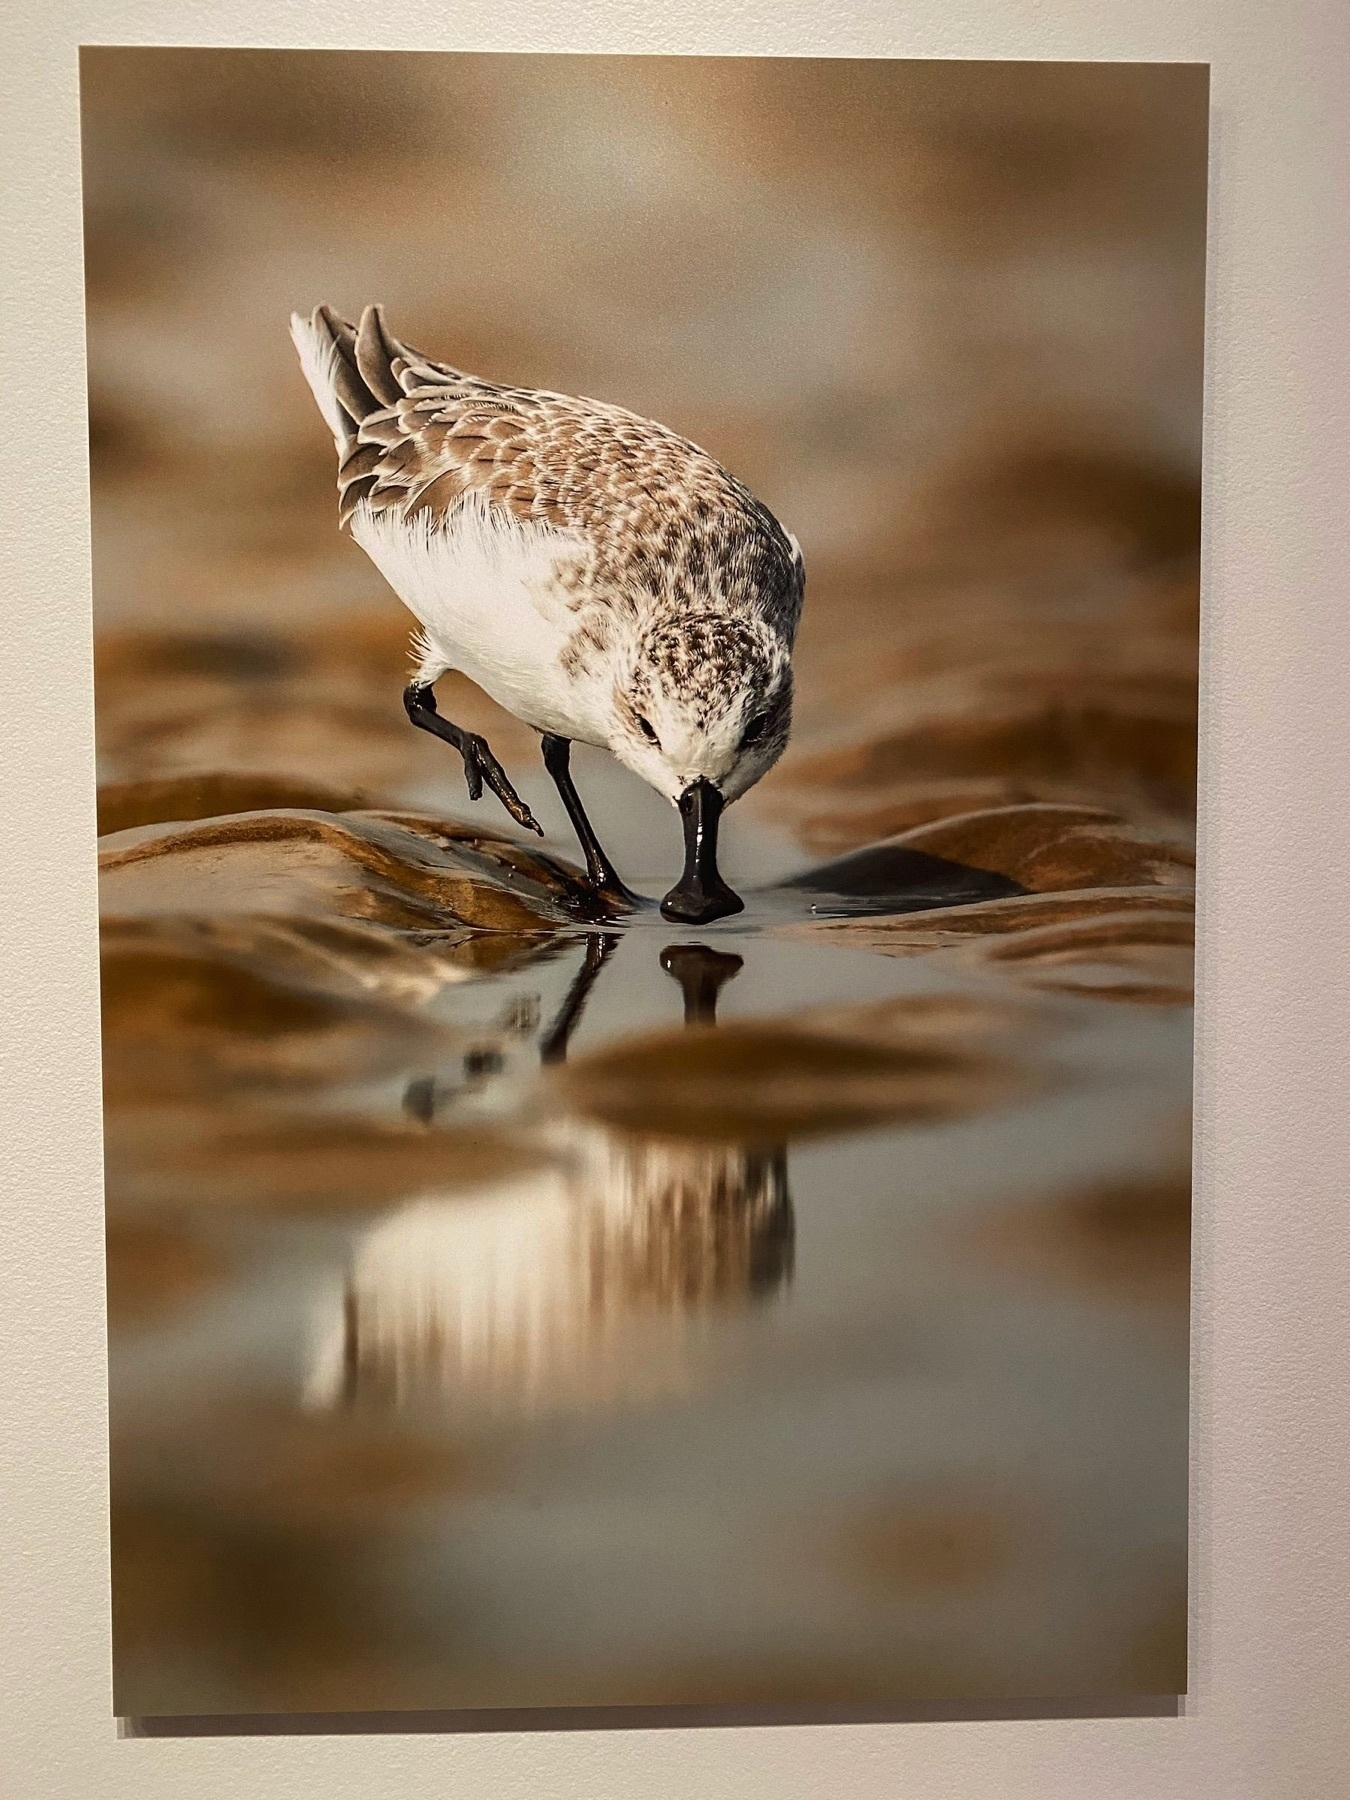 Spoon-billed sandpiper and its reflection.